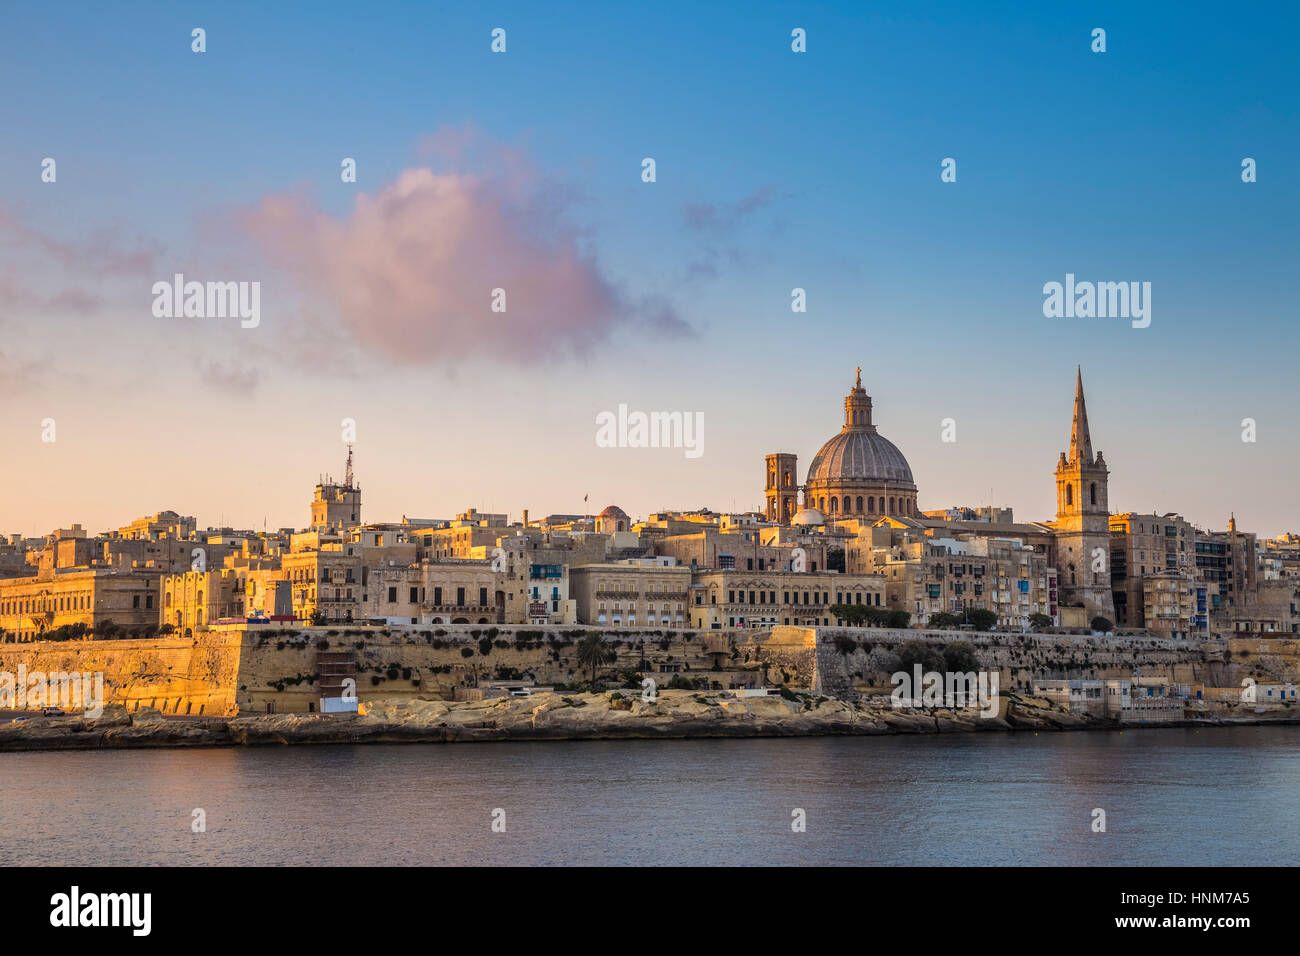 Valletta, Malta - St.Paul's Cathedral and the ancient city of Valletta at sunrise - Stock Image